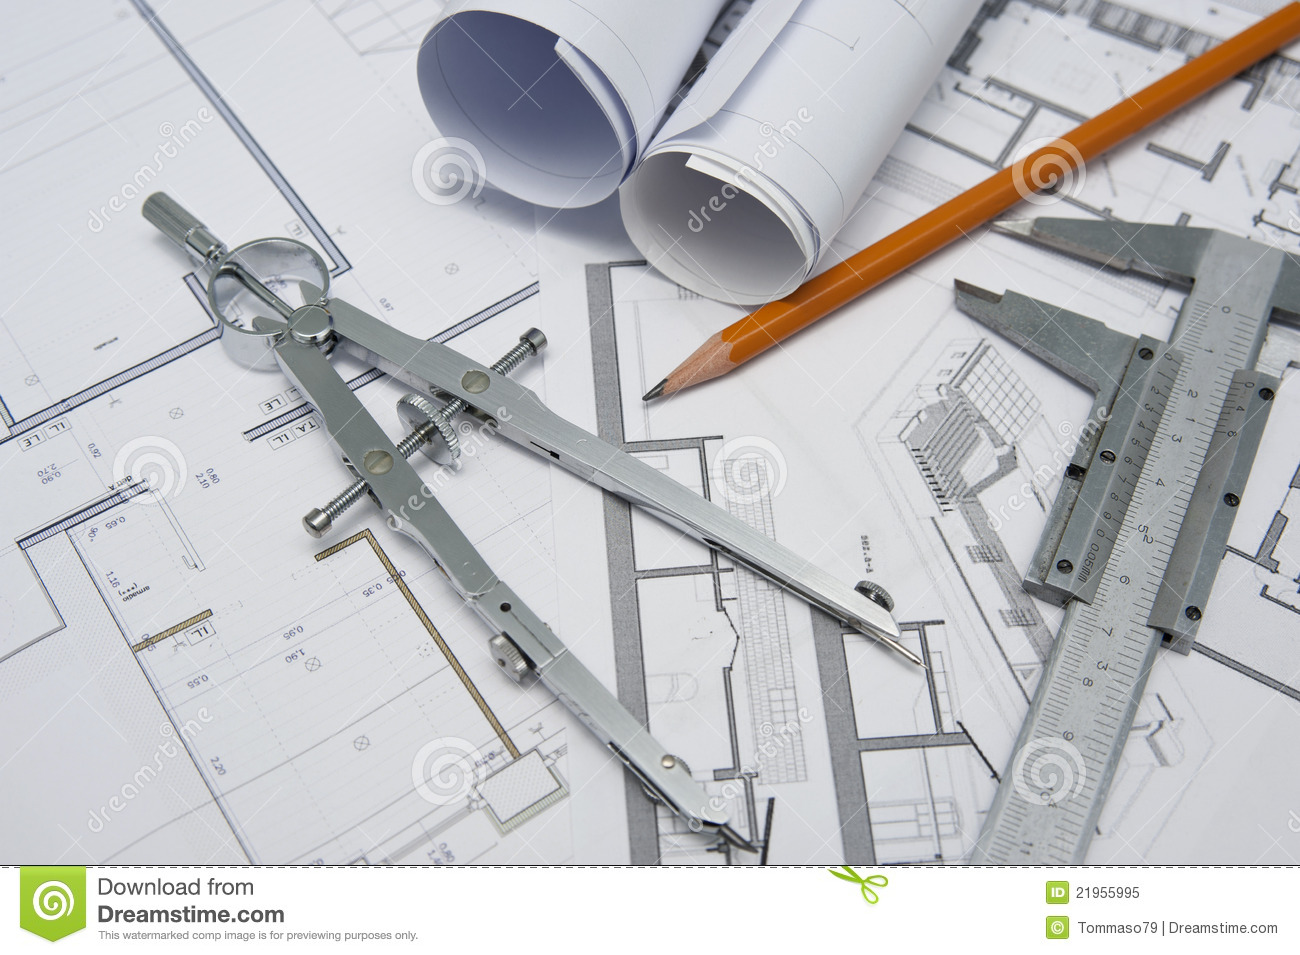 Architect tools royalty free stock photo image 21955995 for Building design tool